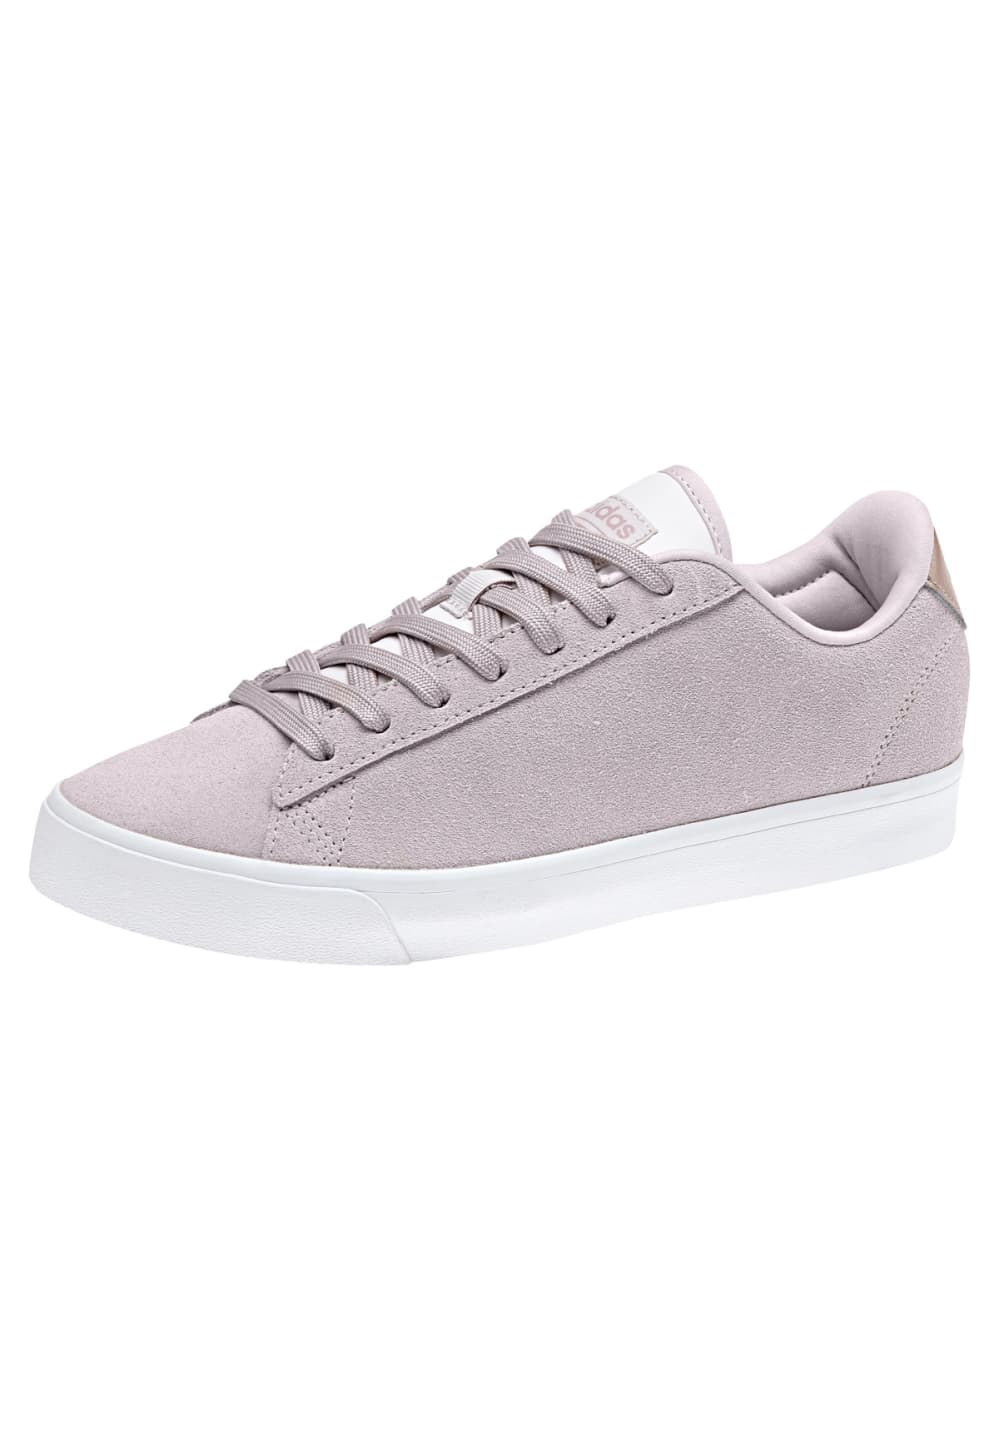 Adidas Neo Cf Daily Qt Cl Grey Sneakers cheap shop in China sale online cheap price buy discount cheap sale footaction RIIxnjPJ